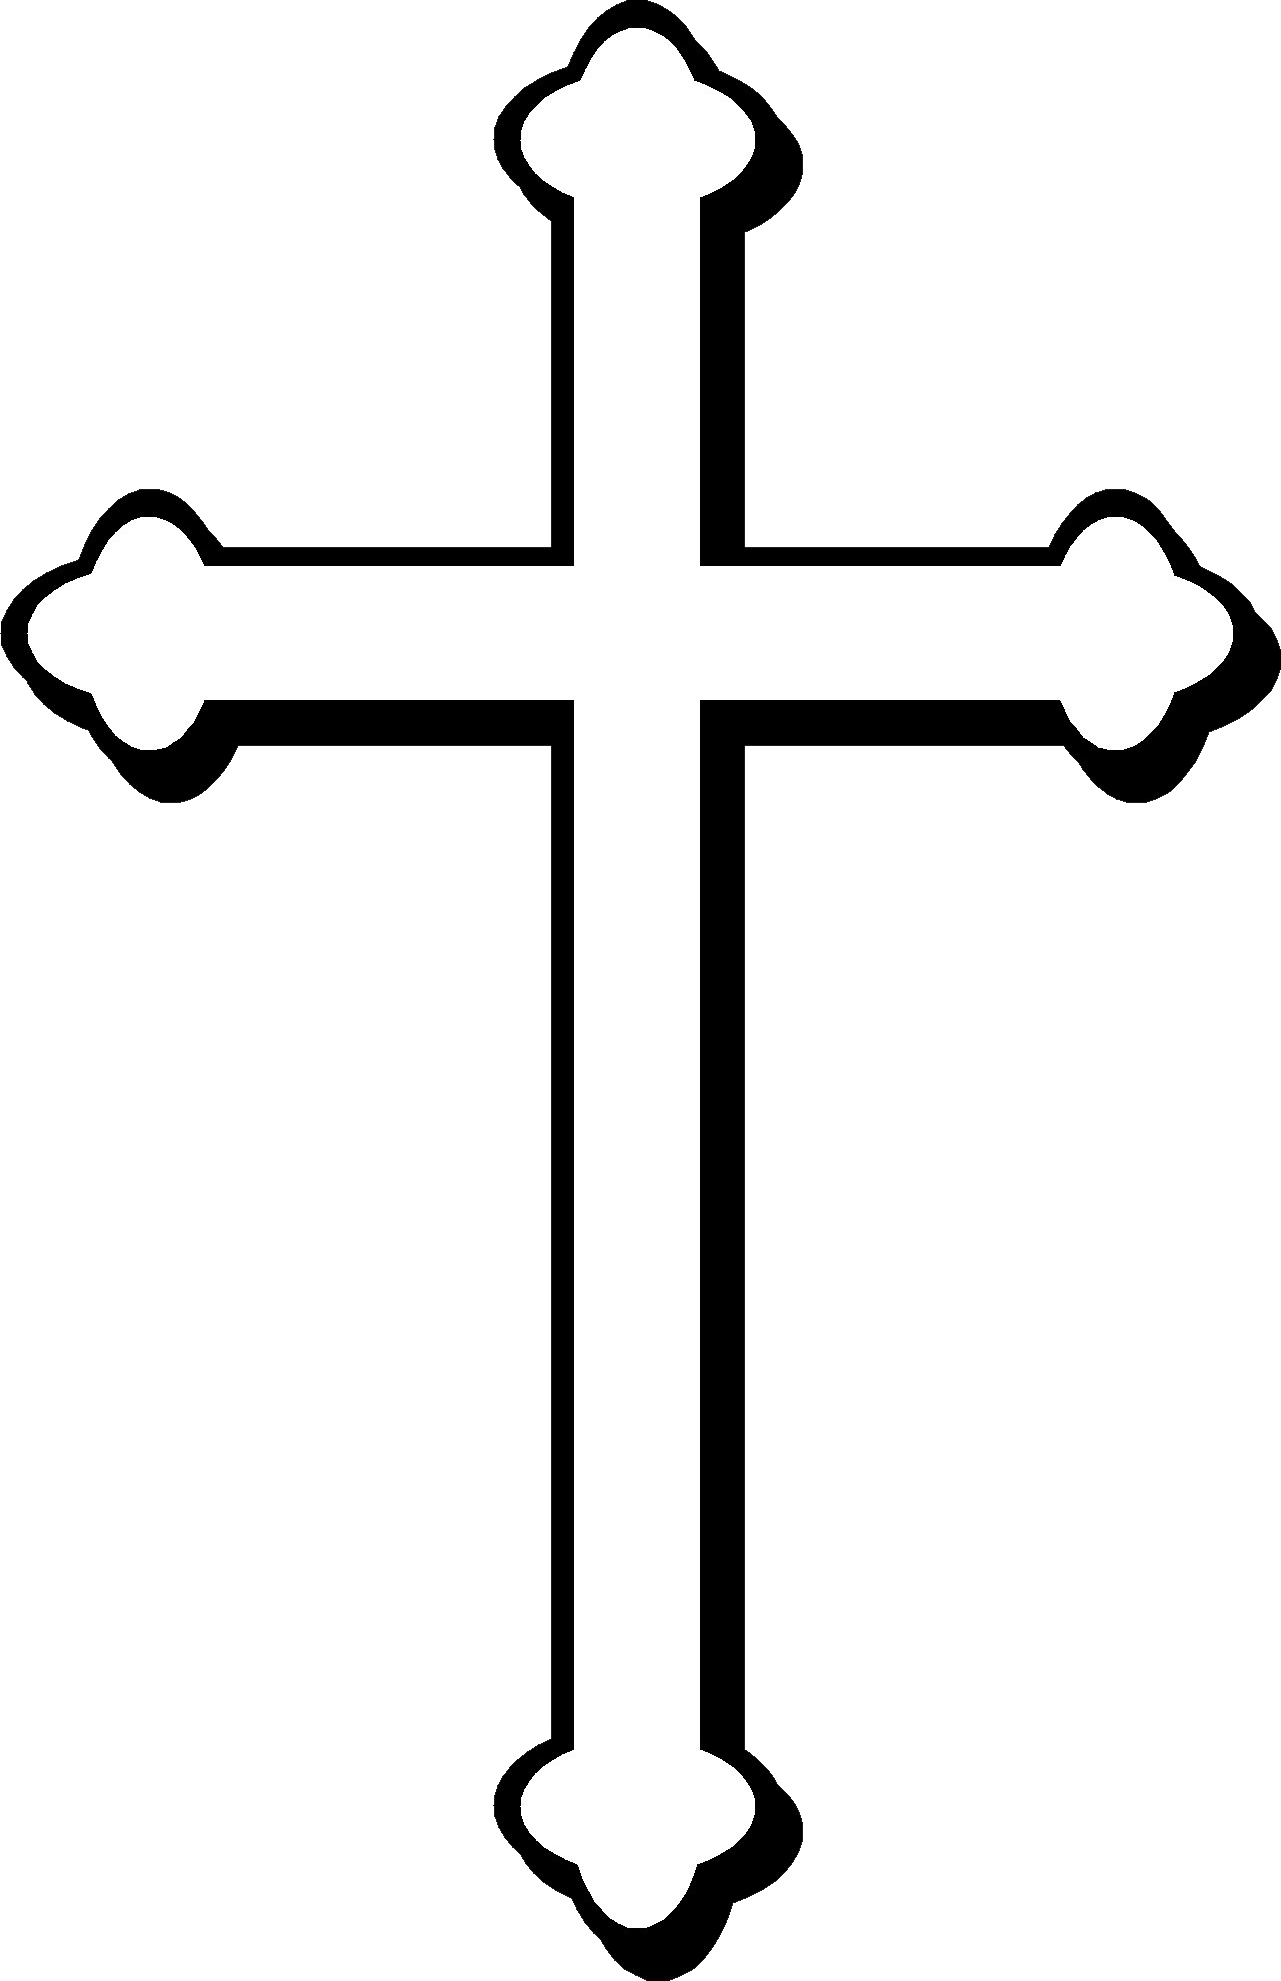 Crucifix clipart christianity. Christian cross png image